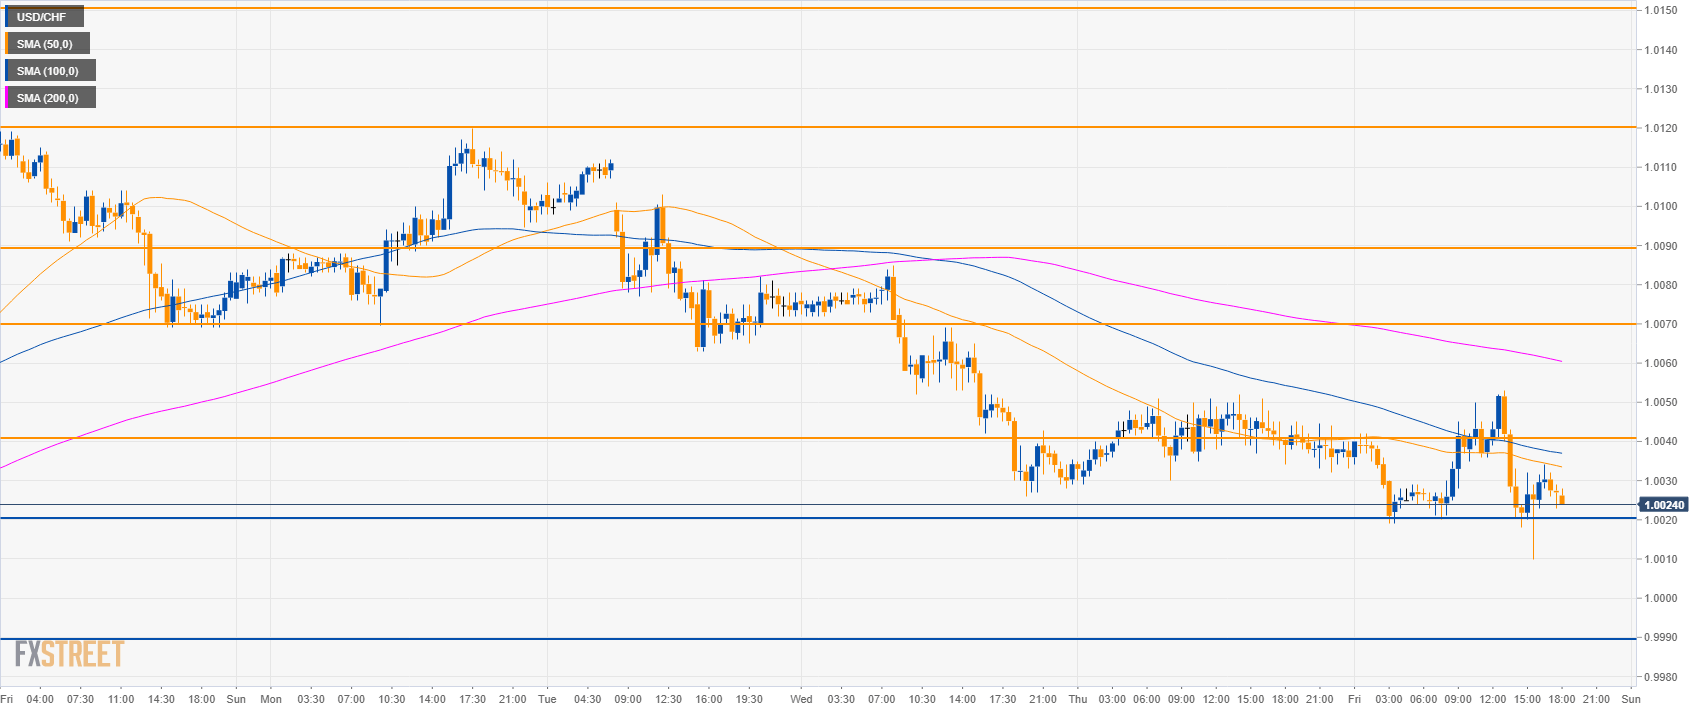 USD/CHF Technical Analysis: Greenback at daily lows against CHF near 1.0020 support